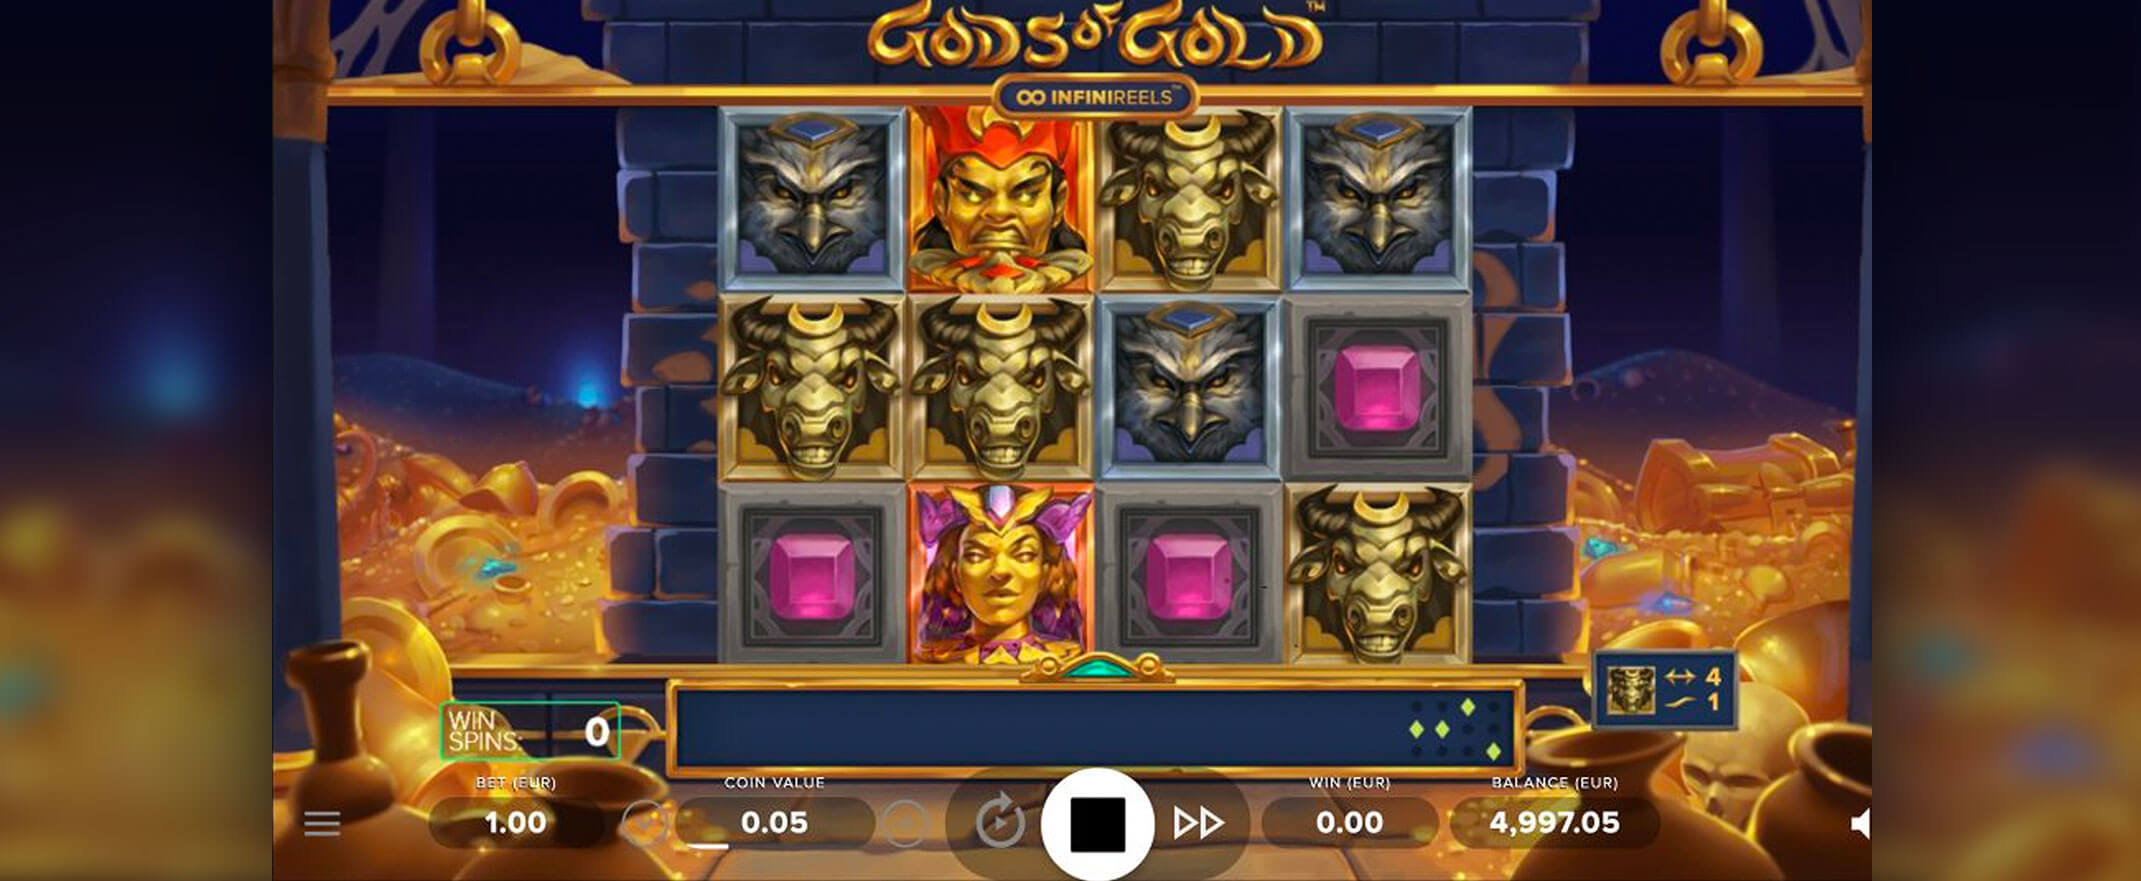 Gods of Gold InfiniReels Slot Gameplay